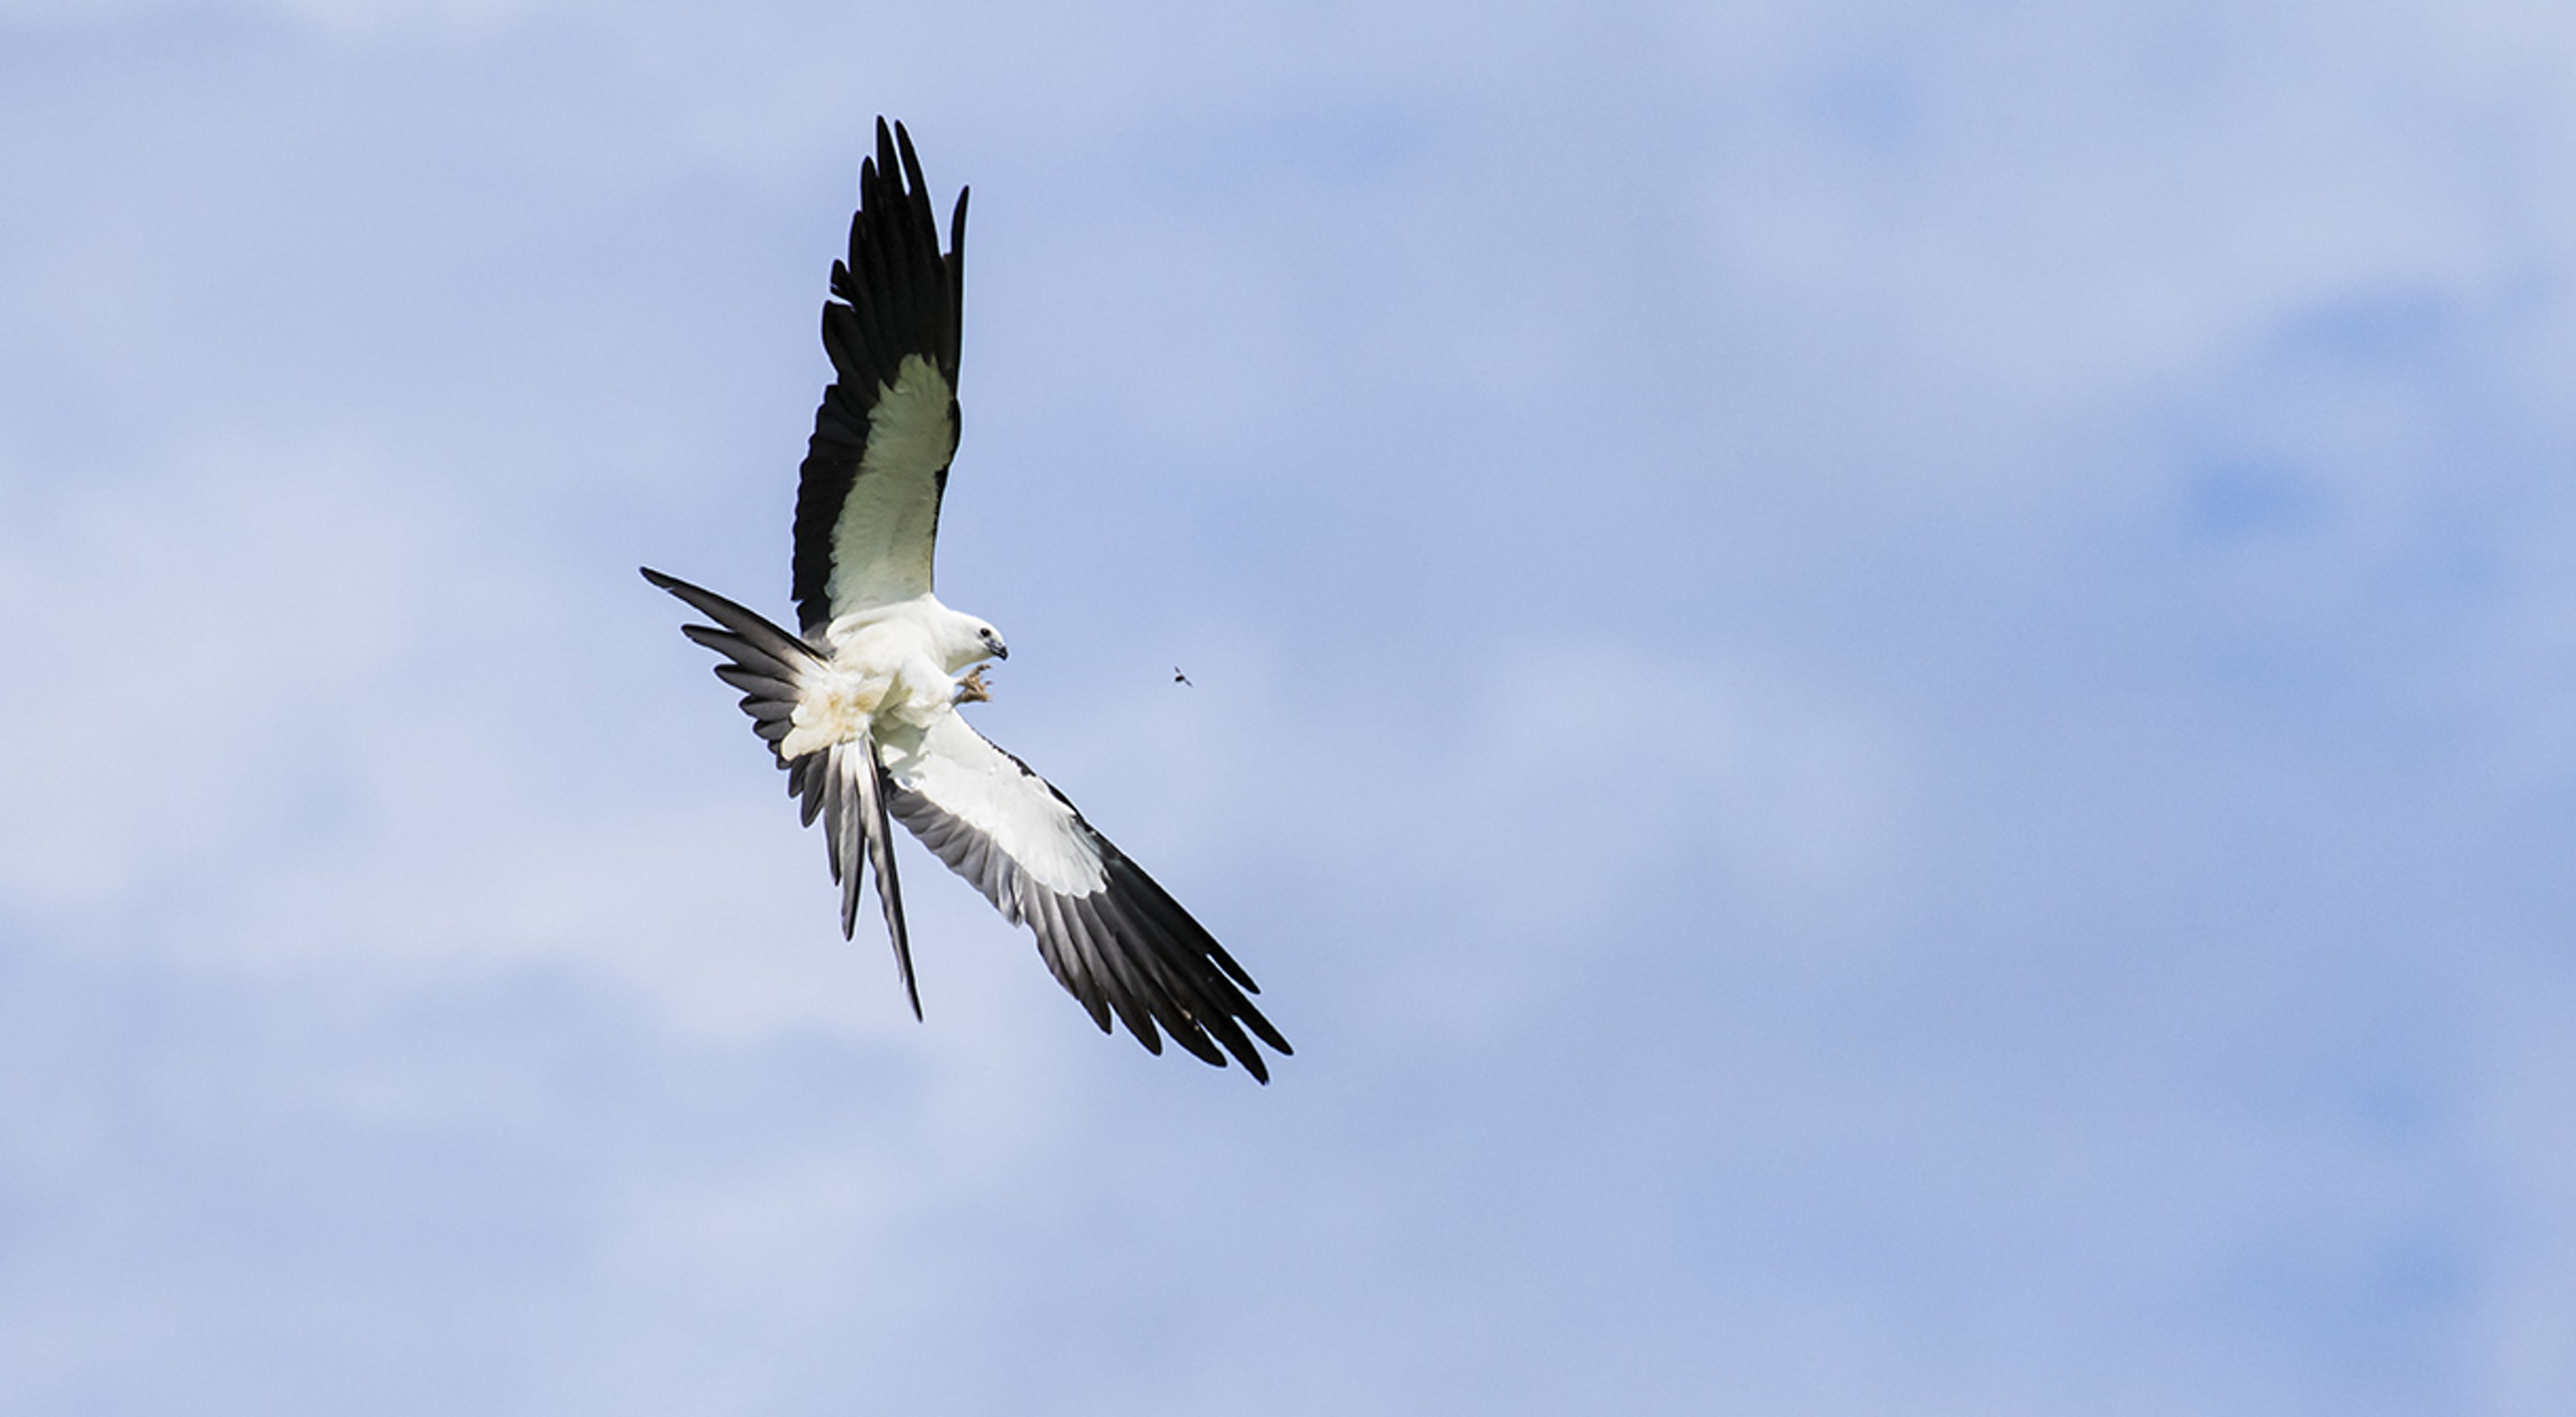 A swallow-tailed kite flies against a blue sky